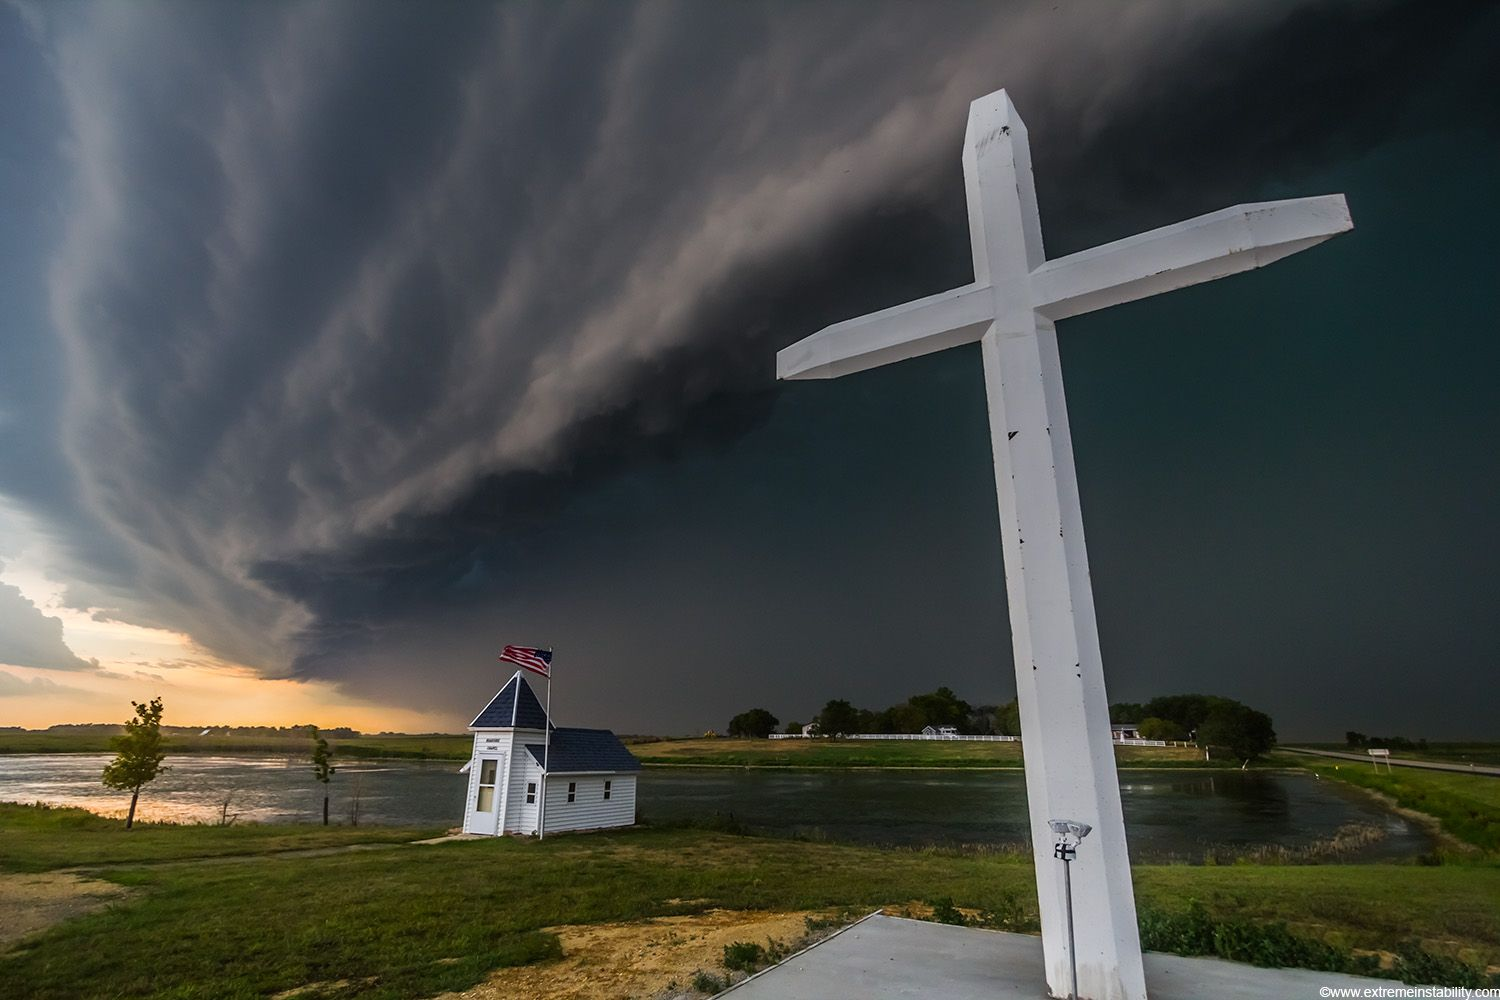 Bow echo, moving 60mph, down the highway, Watertown, SD, 2012.  http://www.extremeinstability.com/selects.html